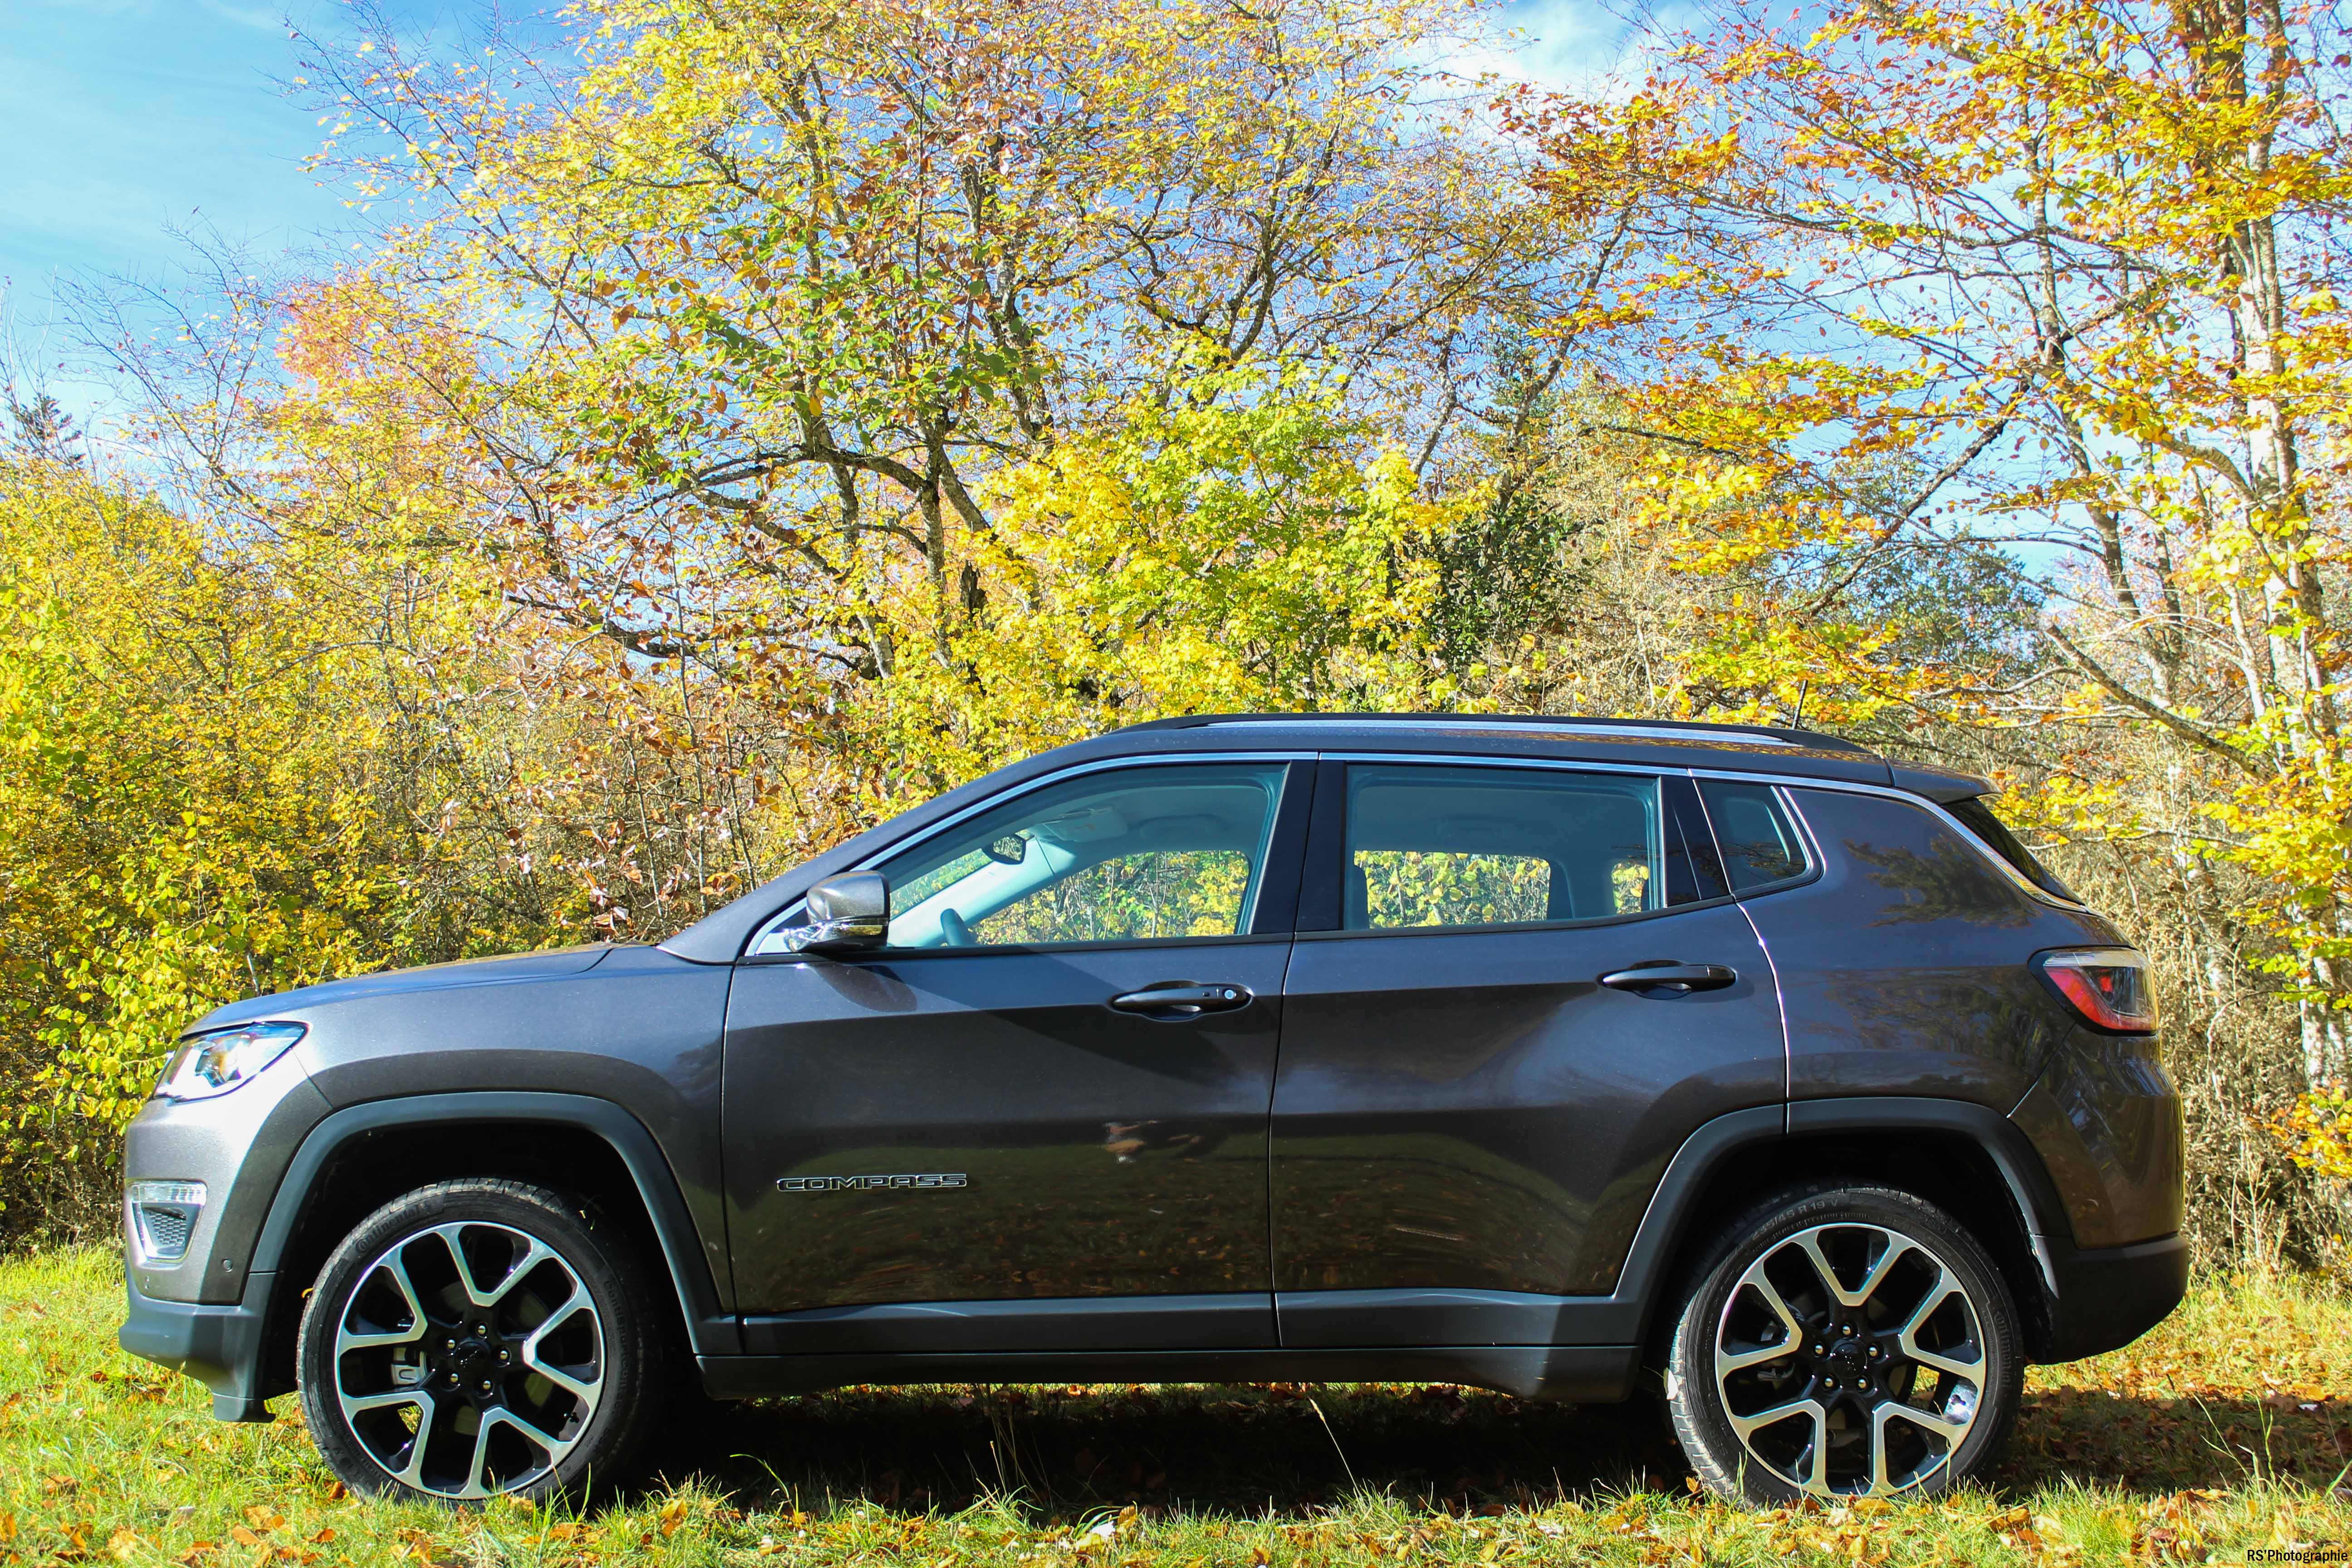 jeepcompass27-jeep-compass-profil-side-Arnaud Demasier-RSPhotographie